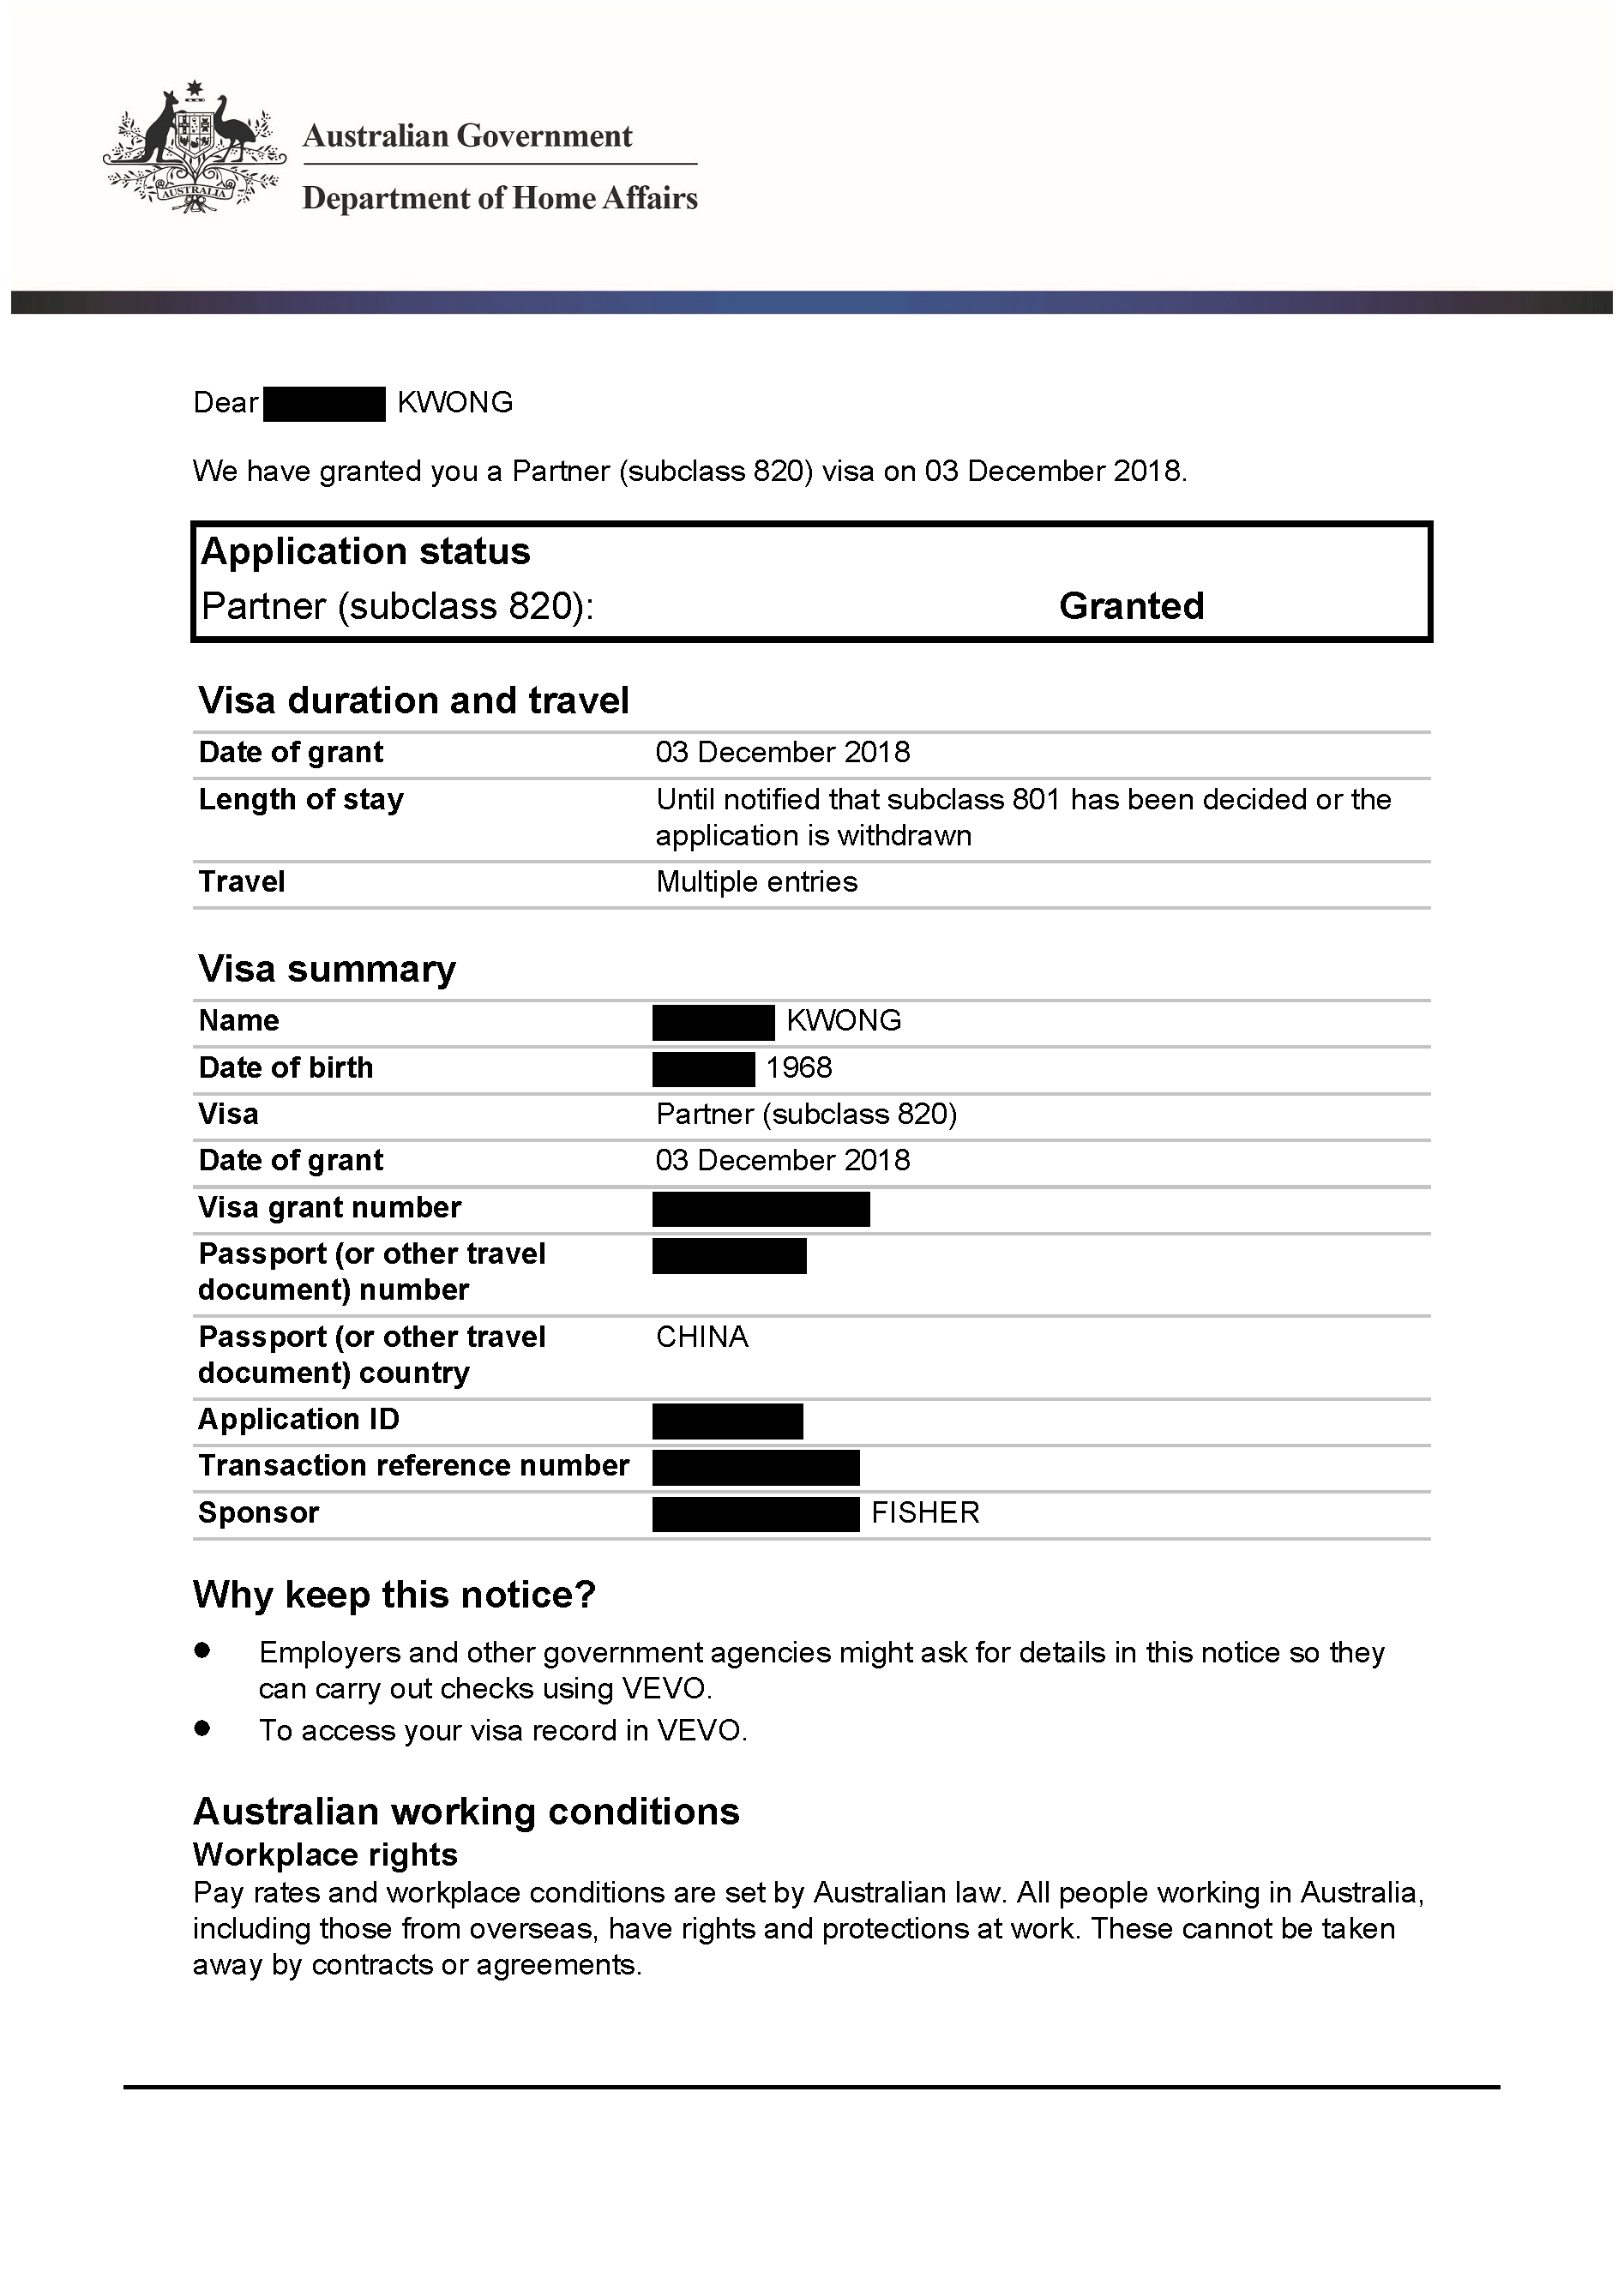 IMMI Grant Notification – 820 Kwong_Redacted